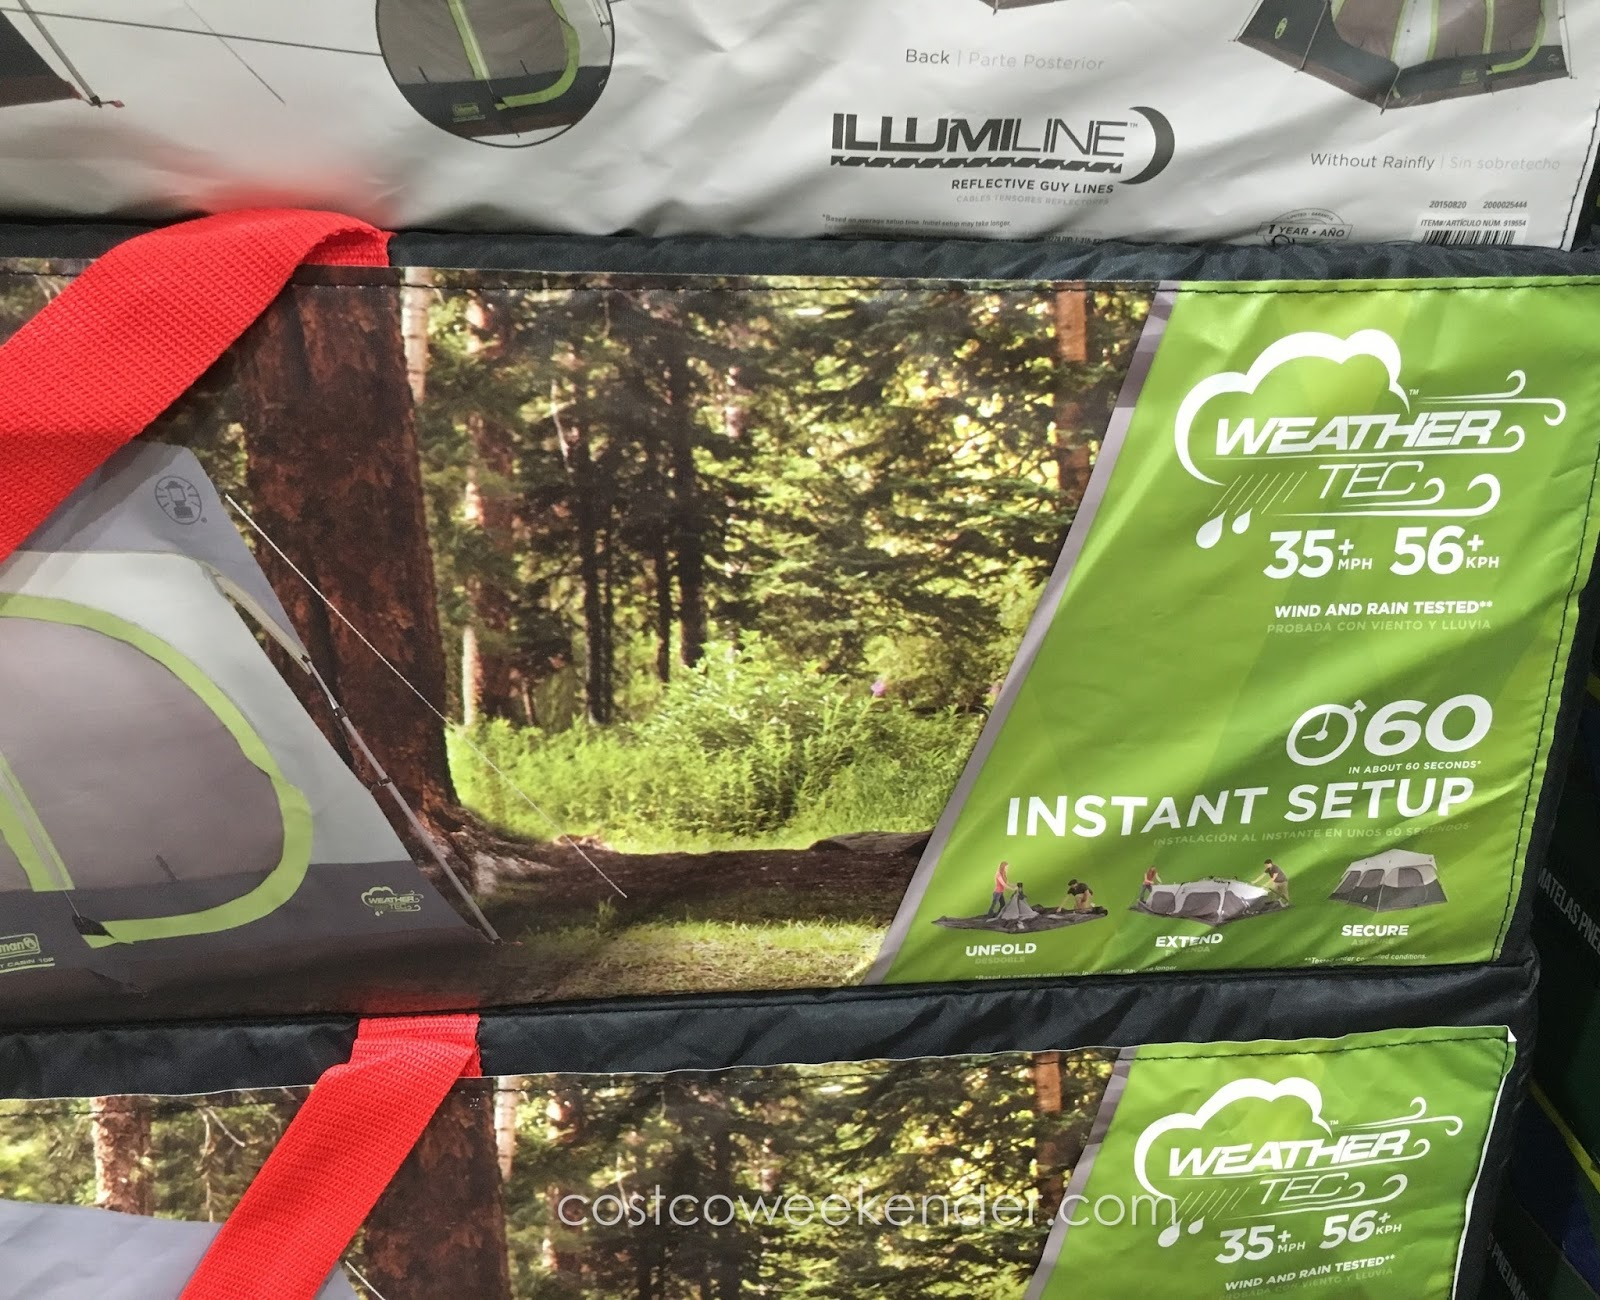 Coleman 10-Person Instant Cabin Tent the comforts of inside when youu0027re & Coleman 10-Person Instant Cabin Tent | Costco Weekender